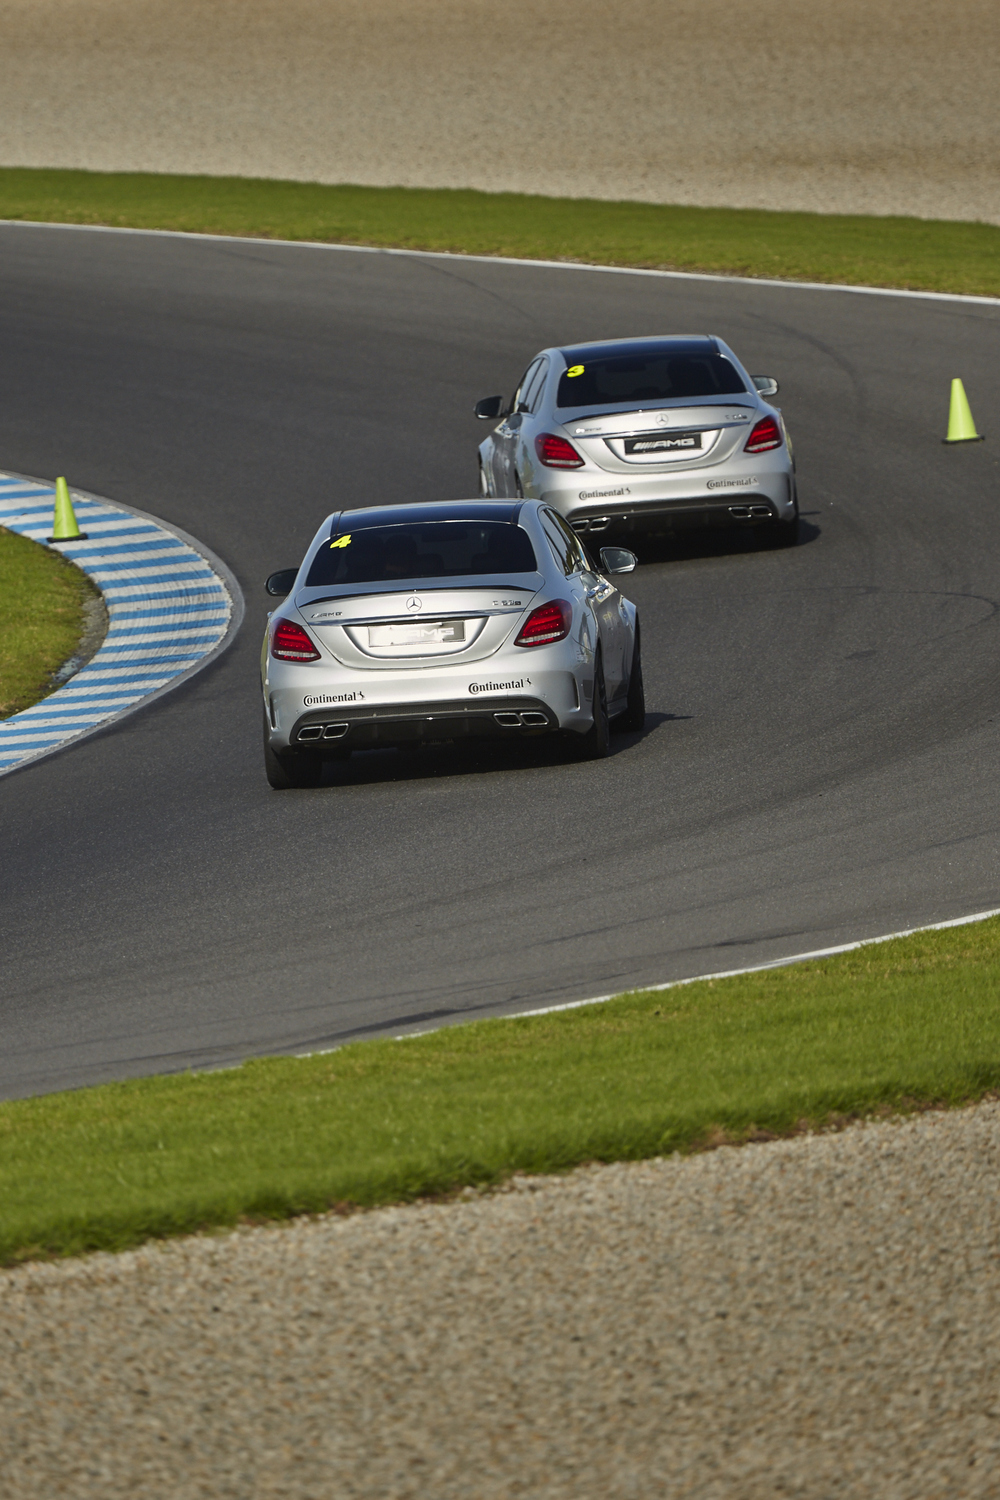 AMG-PhillipIsland-23-5-107.jpg